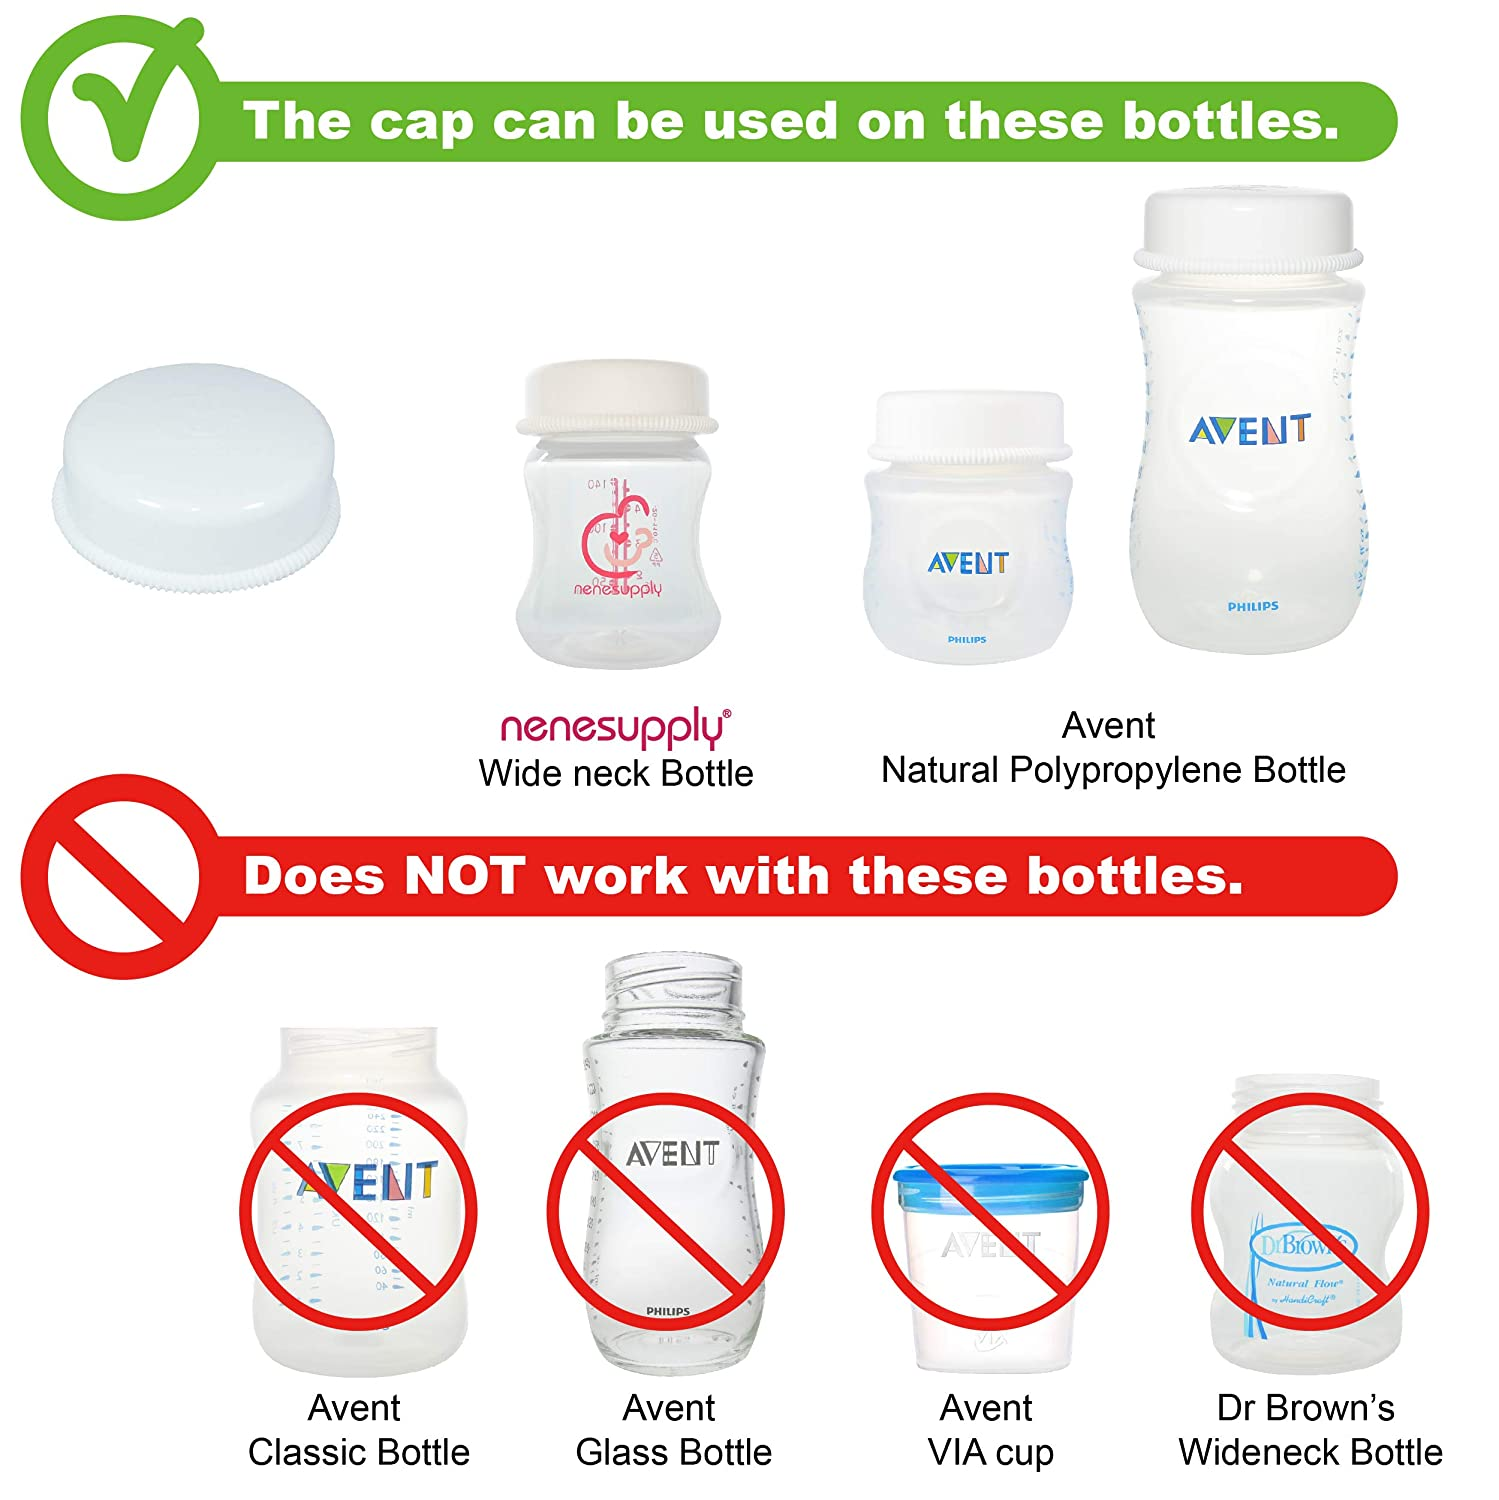 Wide Mouth Breastmilk Collection Storage Bottle Use on Spectra S1 Spectra S2 Avent Breastpump Not Original Spectra S2 Accessories Not Original Spectra Pump Parts Replace Spectra Bottle or Avent Bottle